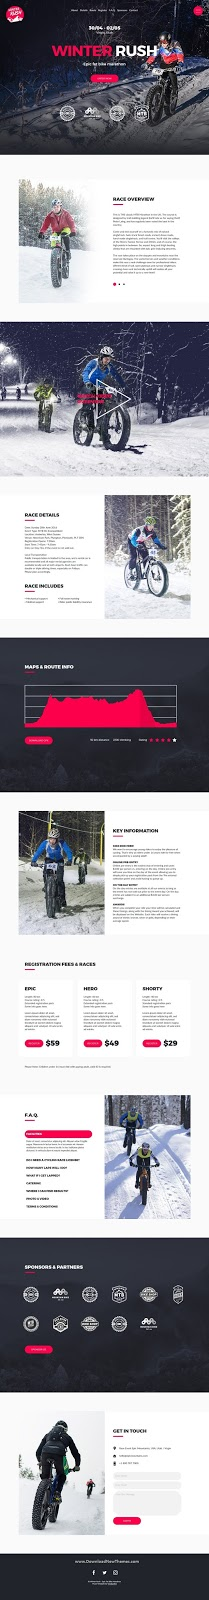 Best Mountain Bike Event Website Template